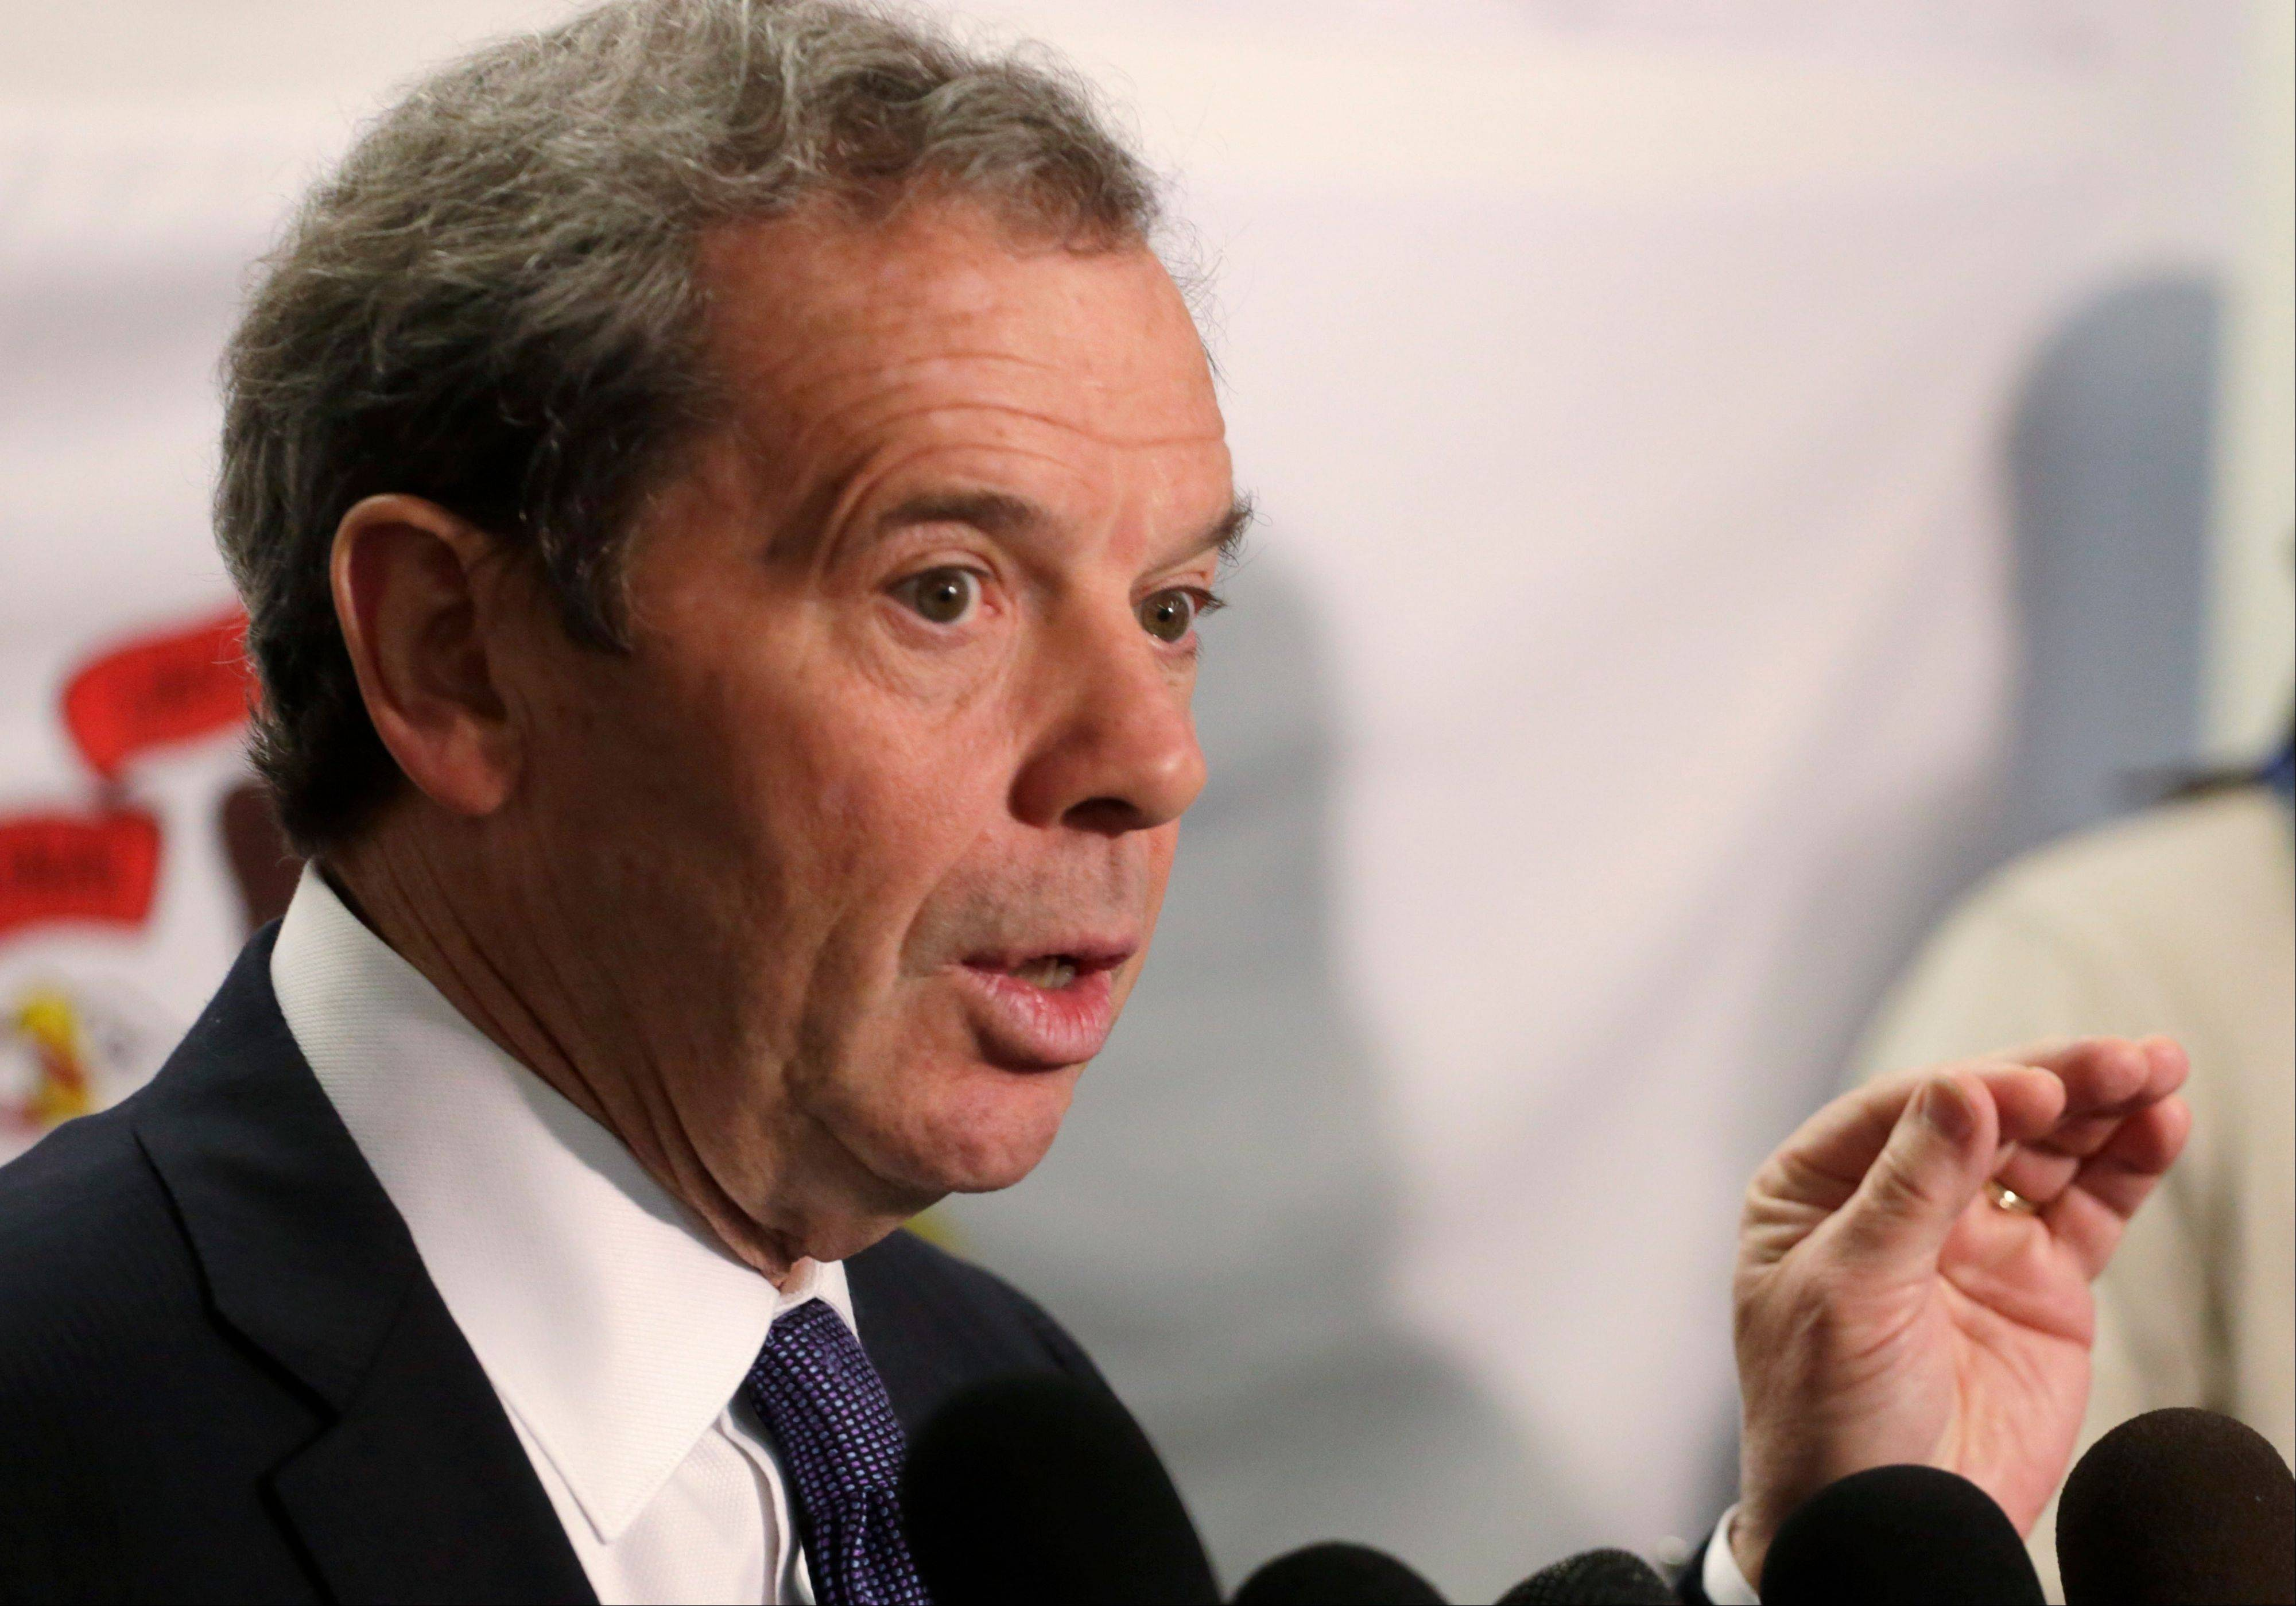 Senate President John Cullerton is not optimistic House Speaker Michael Madigan's pension proposal will pass in the Senate.